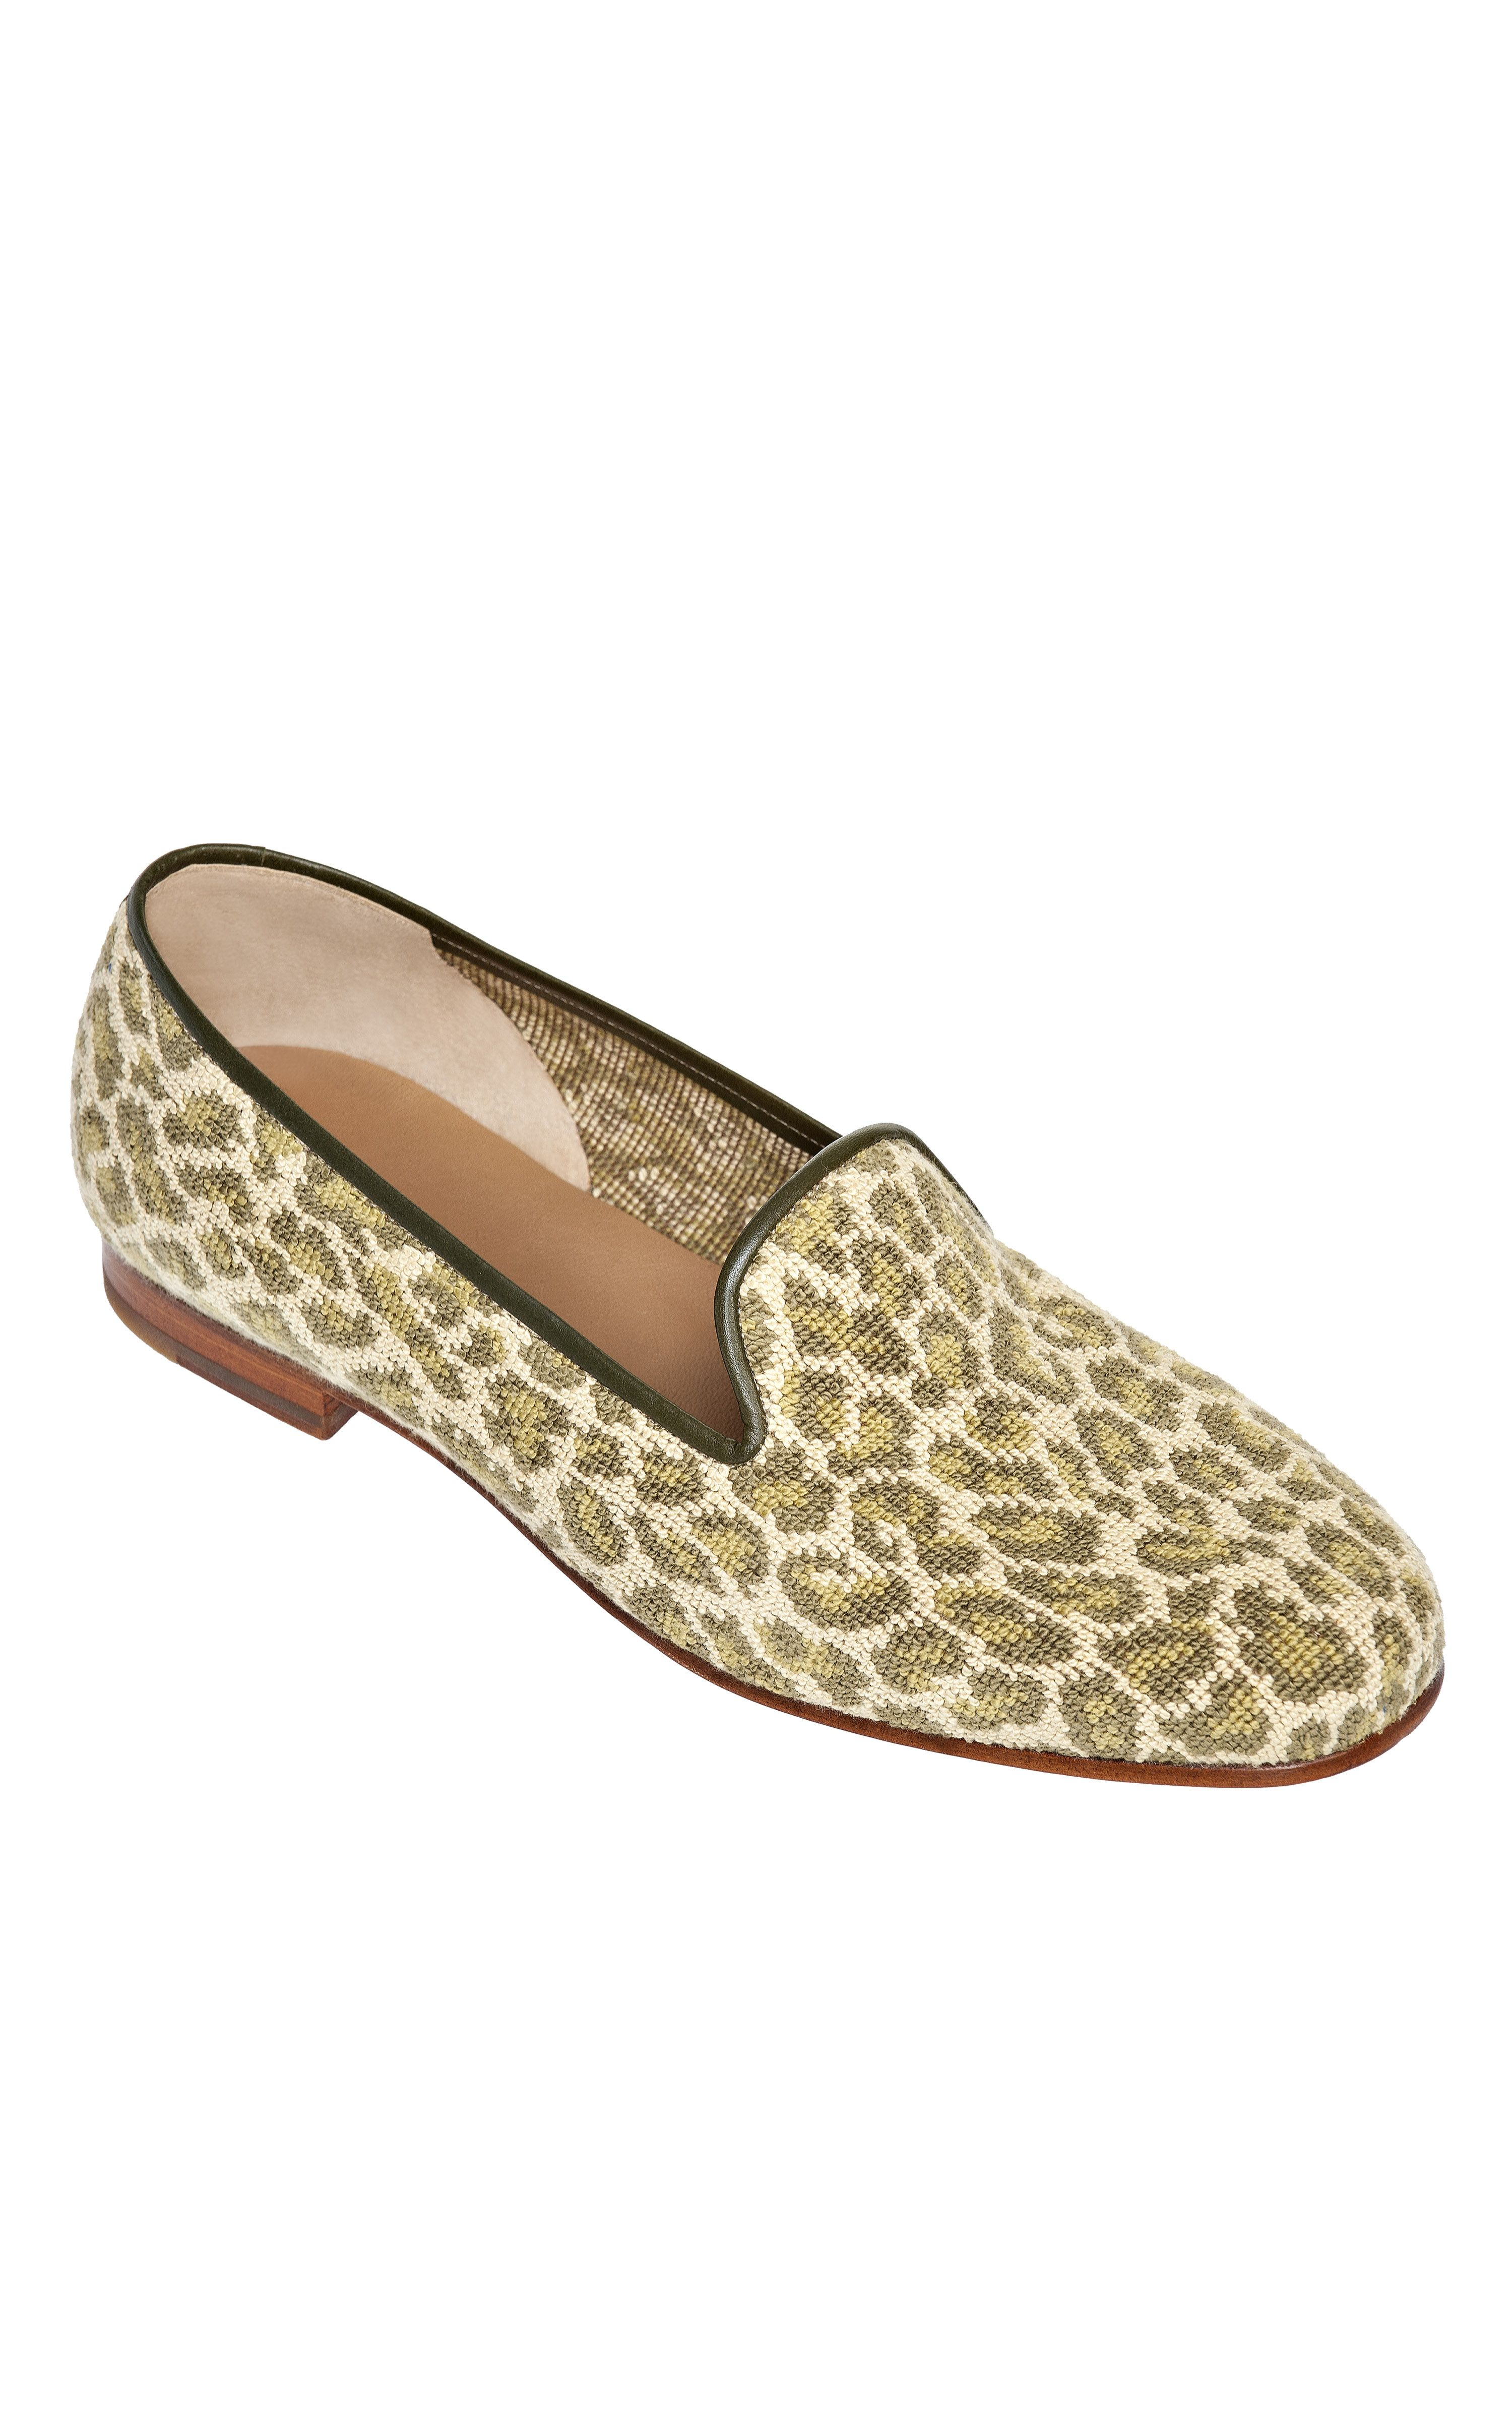 0d13b0c0b2bf Stubbs and Wooton Jane Olive Needlepoint Slippers